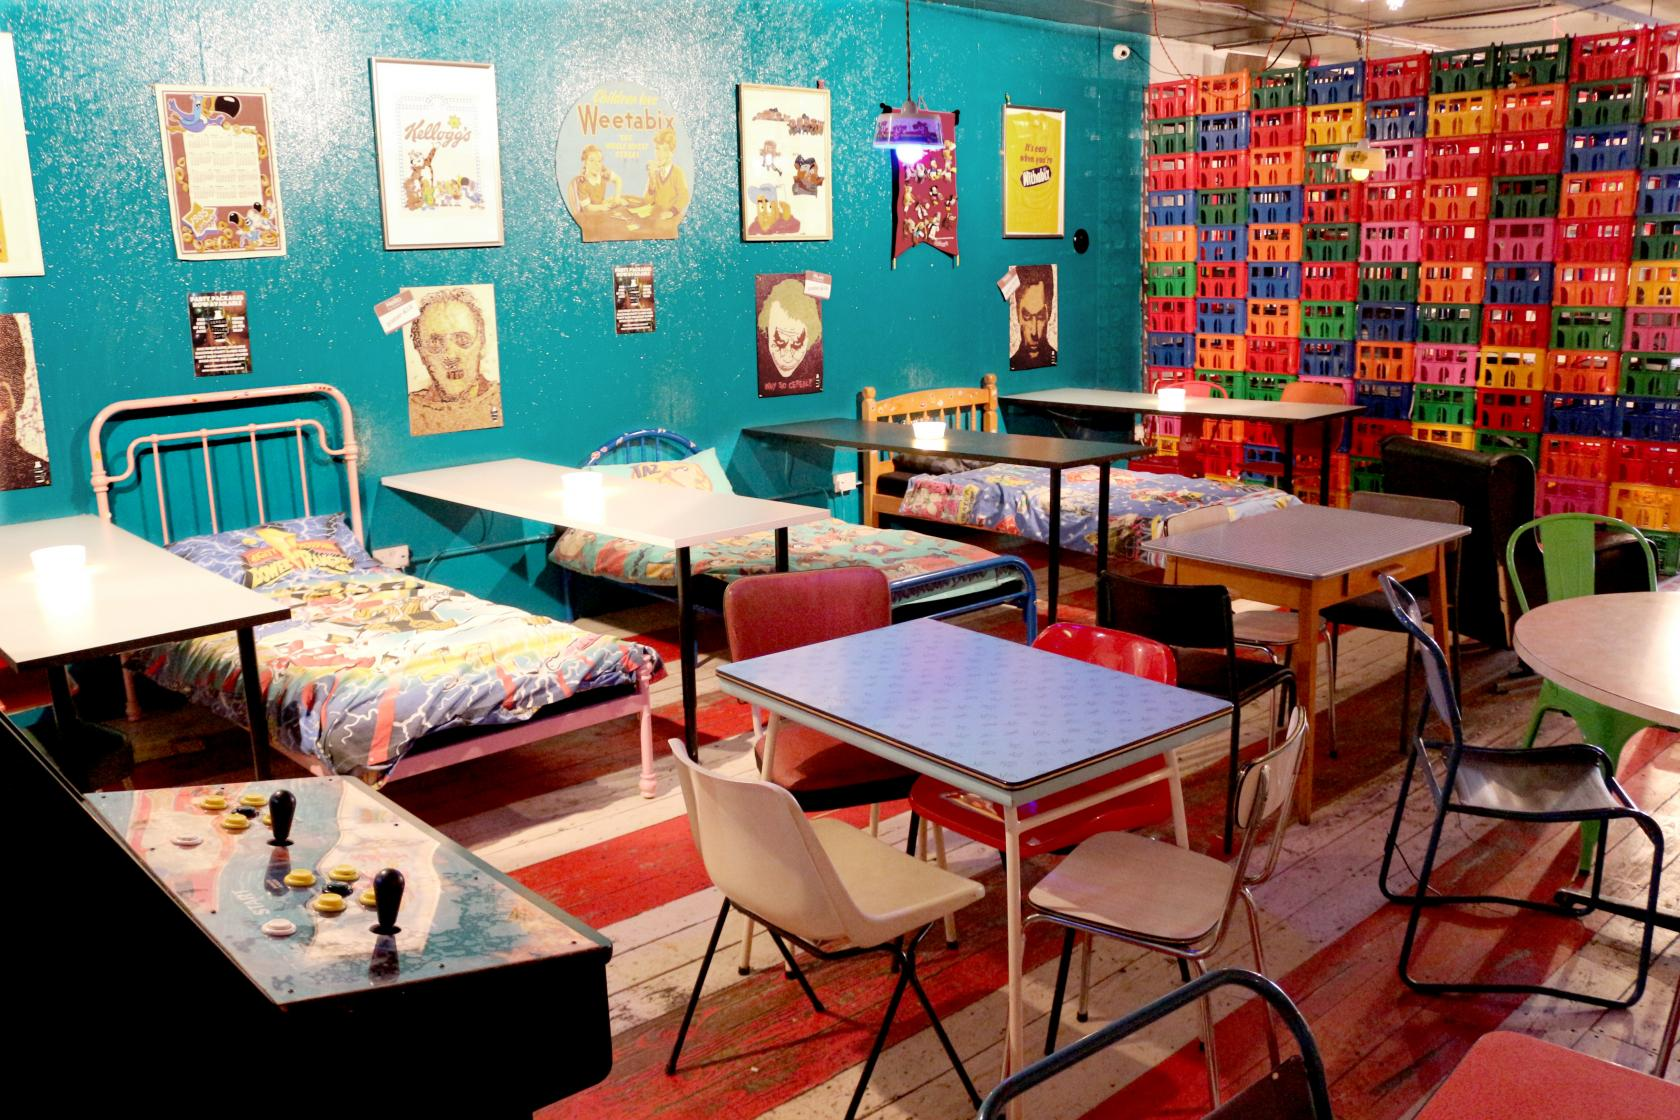 Cereal Killer Cafe Camden sells over 120 different types of cereal. This quirky venue is available for private hire, too!